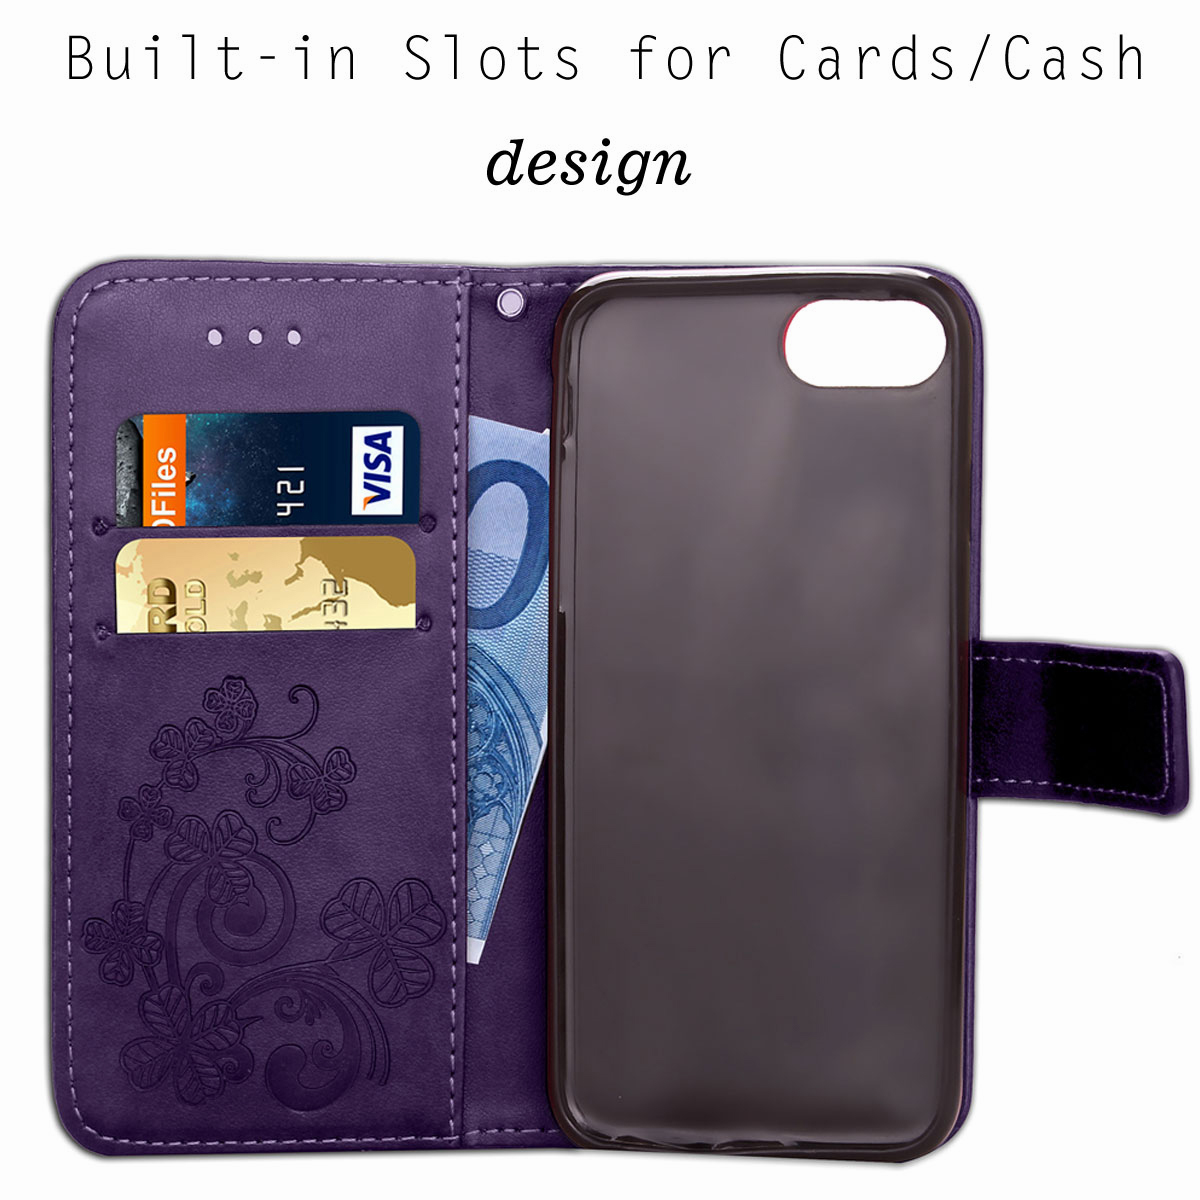 For-Apple-iPhone-Phones-Soft-Leather-Magnetic-Wallet-Card-Holder-Sim-Case-Cover thumbnail 48